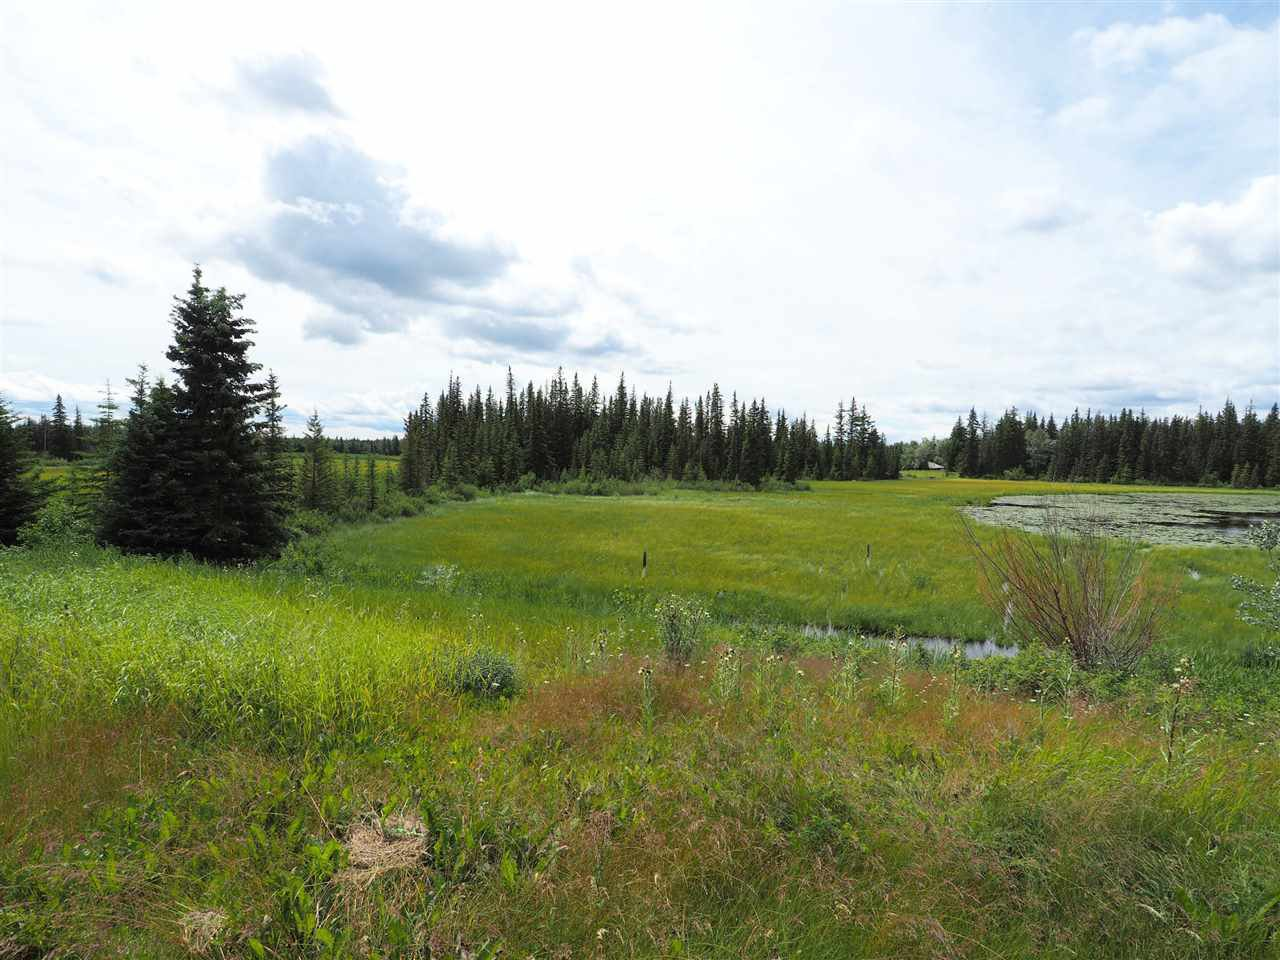 Photo 6: Photos: 5532 LITTLE FORT 24 Highway in Lone Butte: Lone Butte/Green Lk/Watch Lk Land for sale (100 Mile House (Zone 10))  : MLS®# R2419528